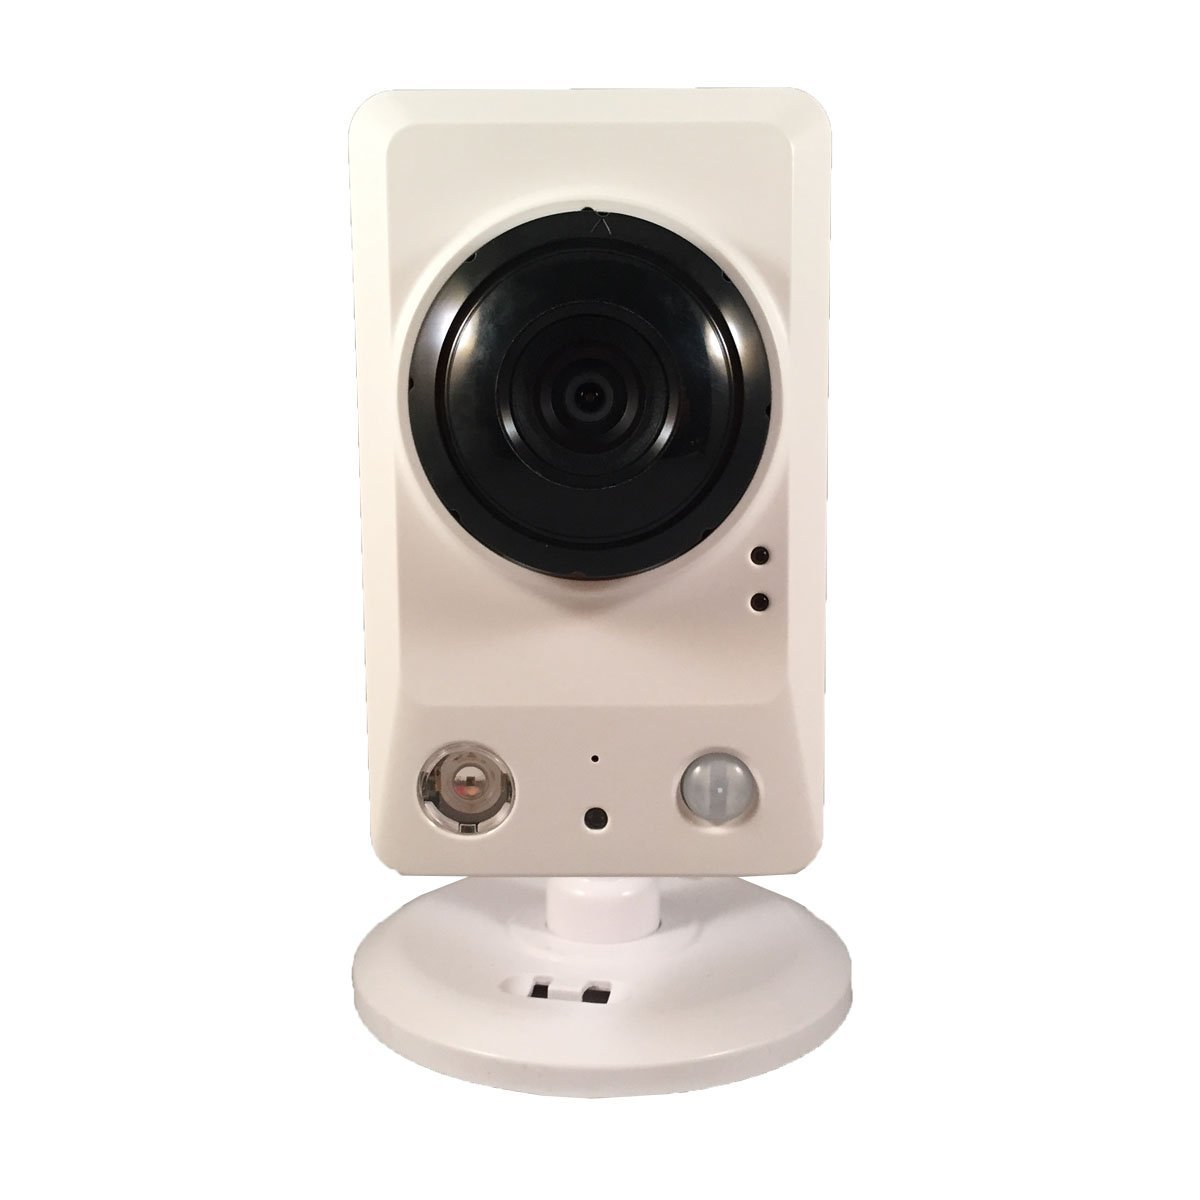 SecurityVideoDirect Small Security Cameras